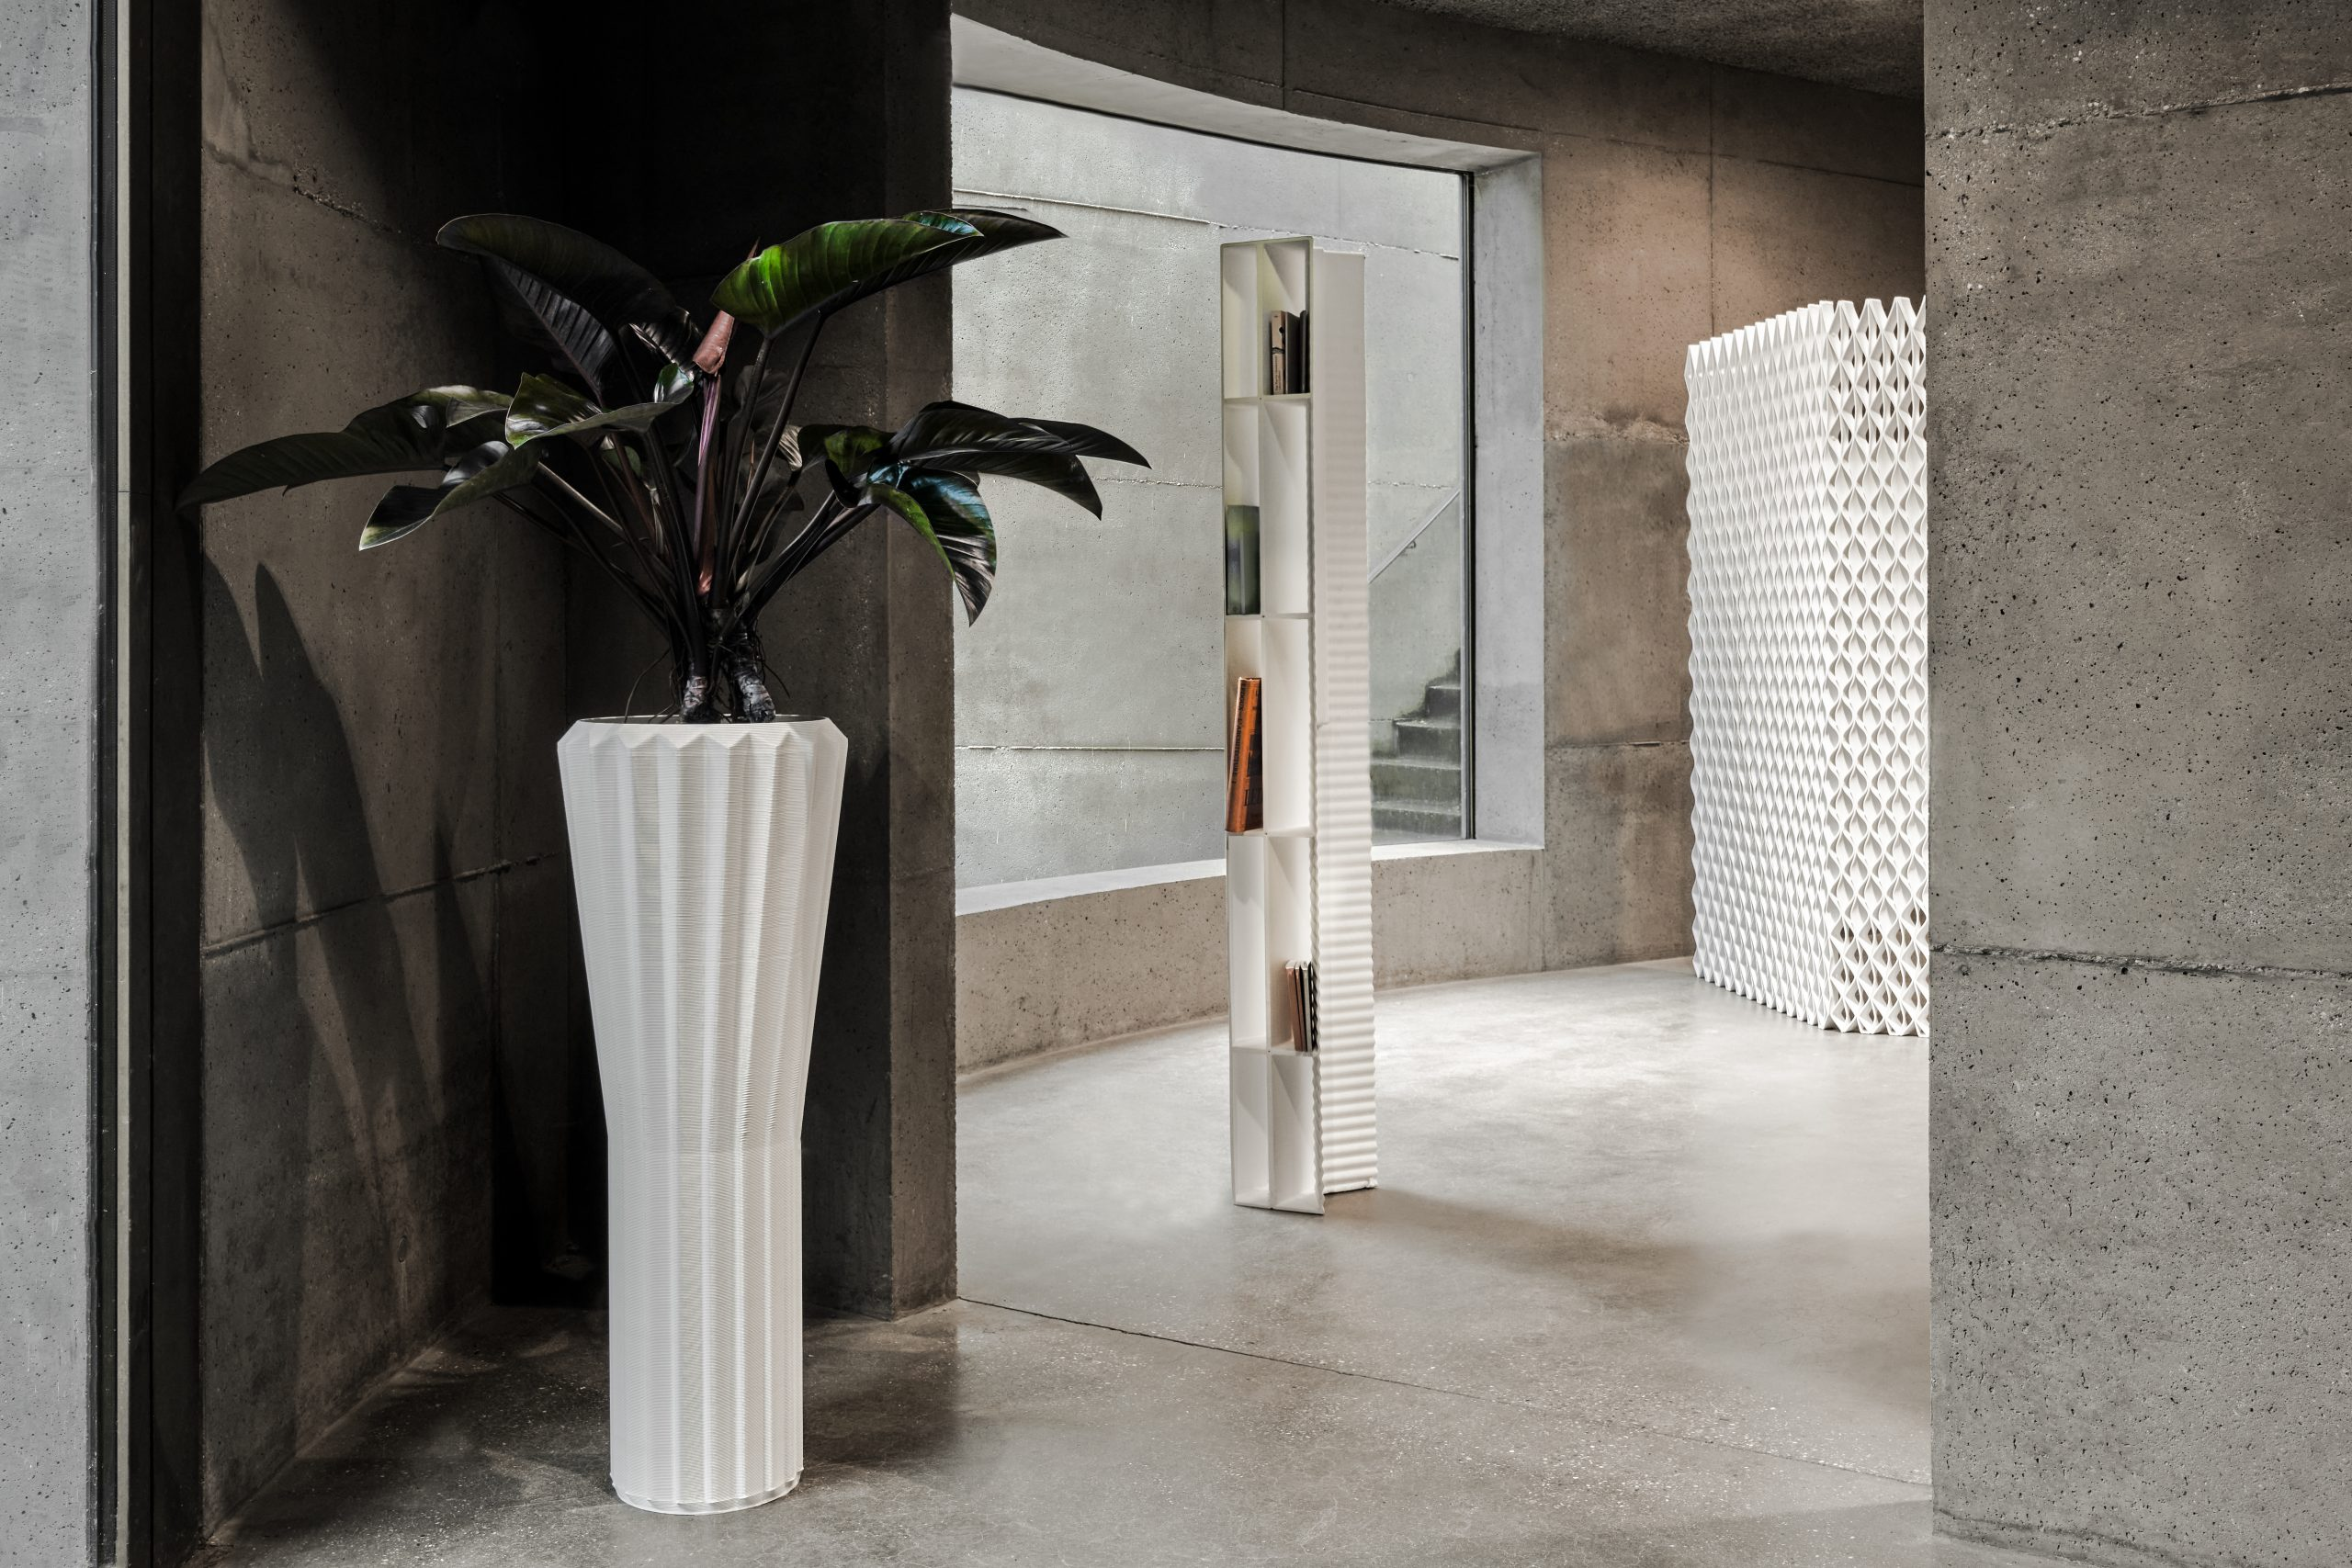 Aectual 3D printed interior products